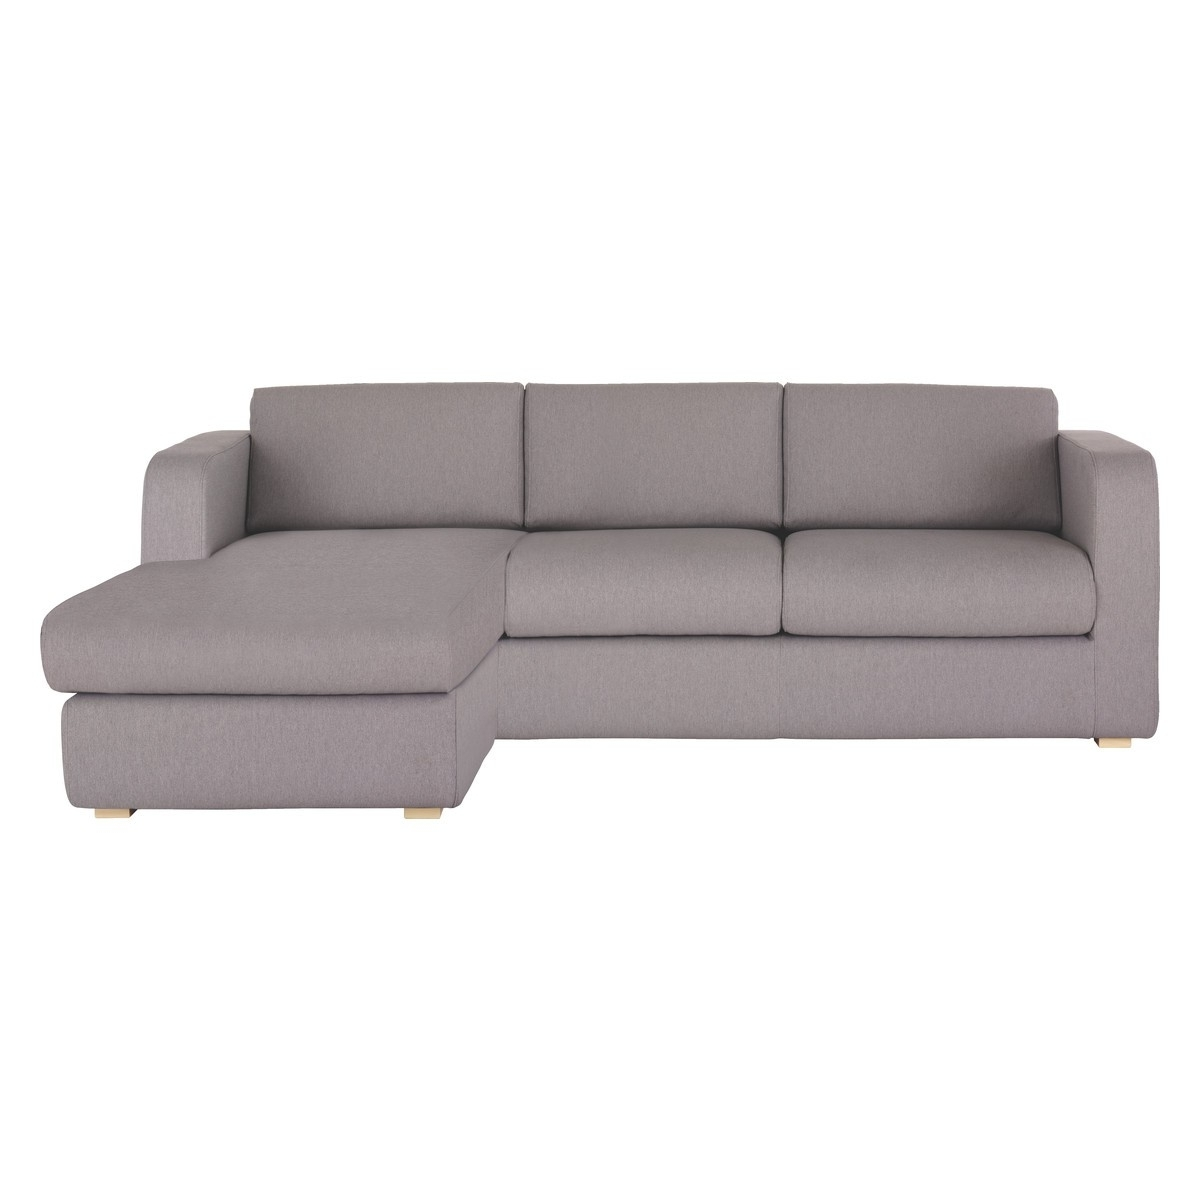 Most Popular Chaise Beds Regarding Sofas: Chaise Sofa Bed (View 12 of 15)